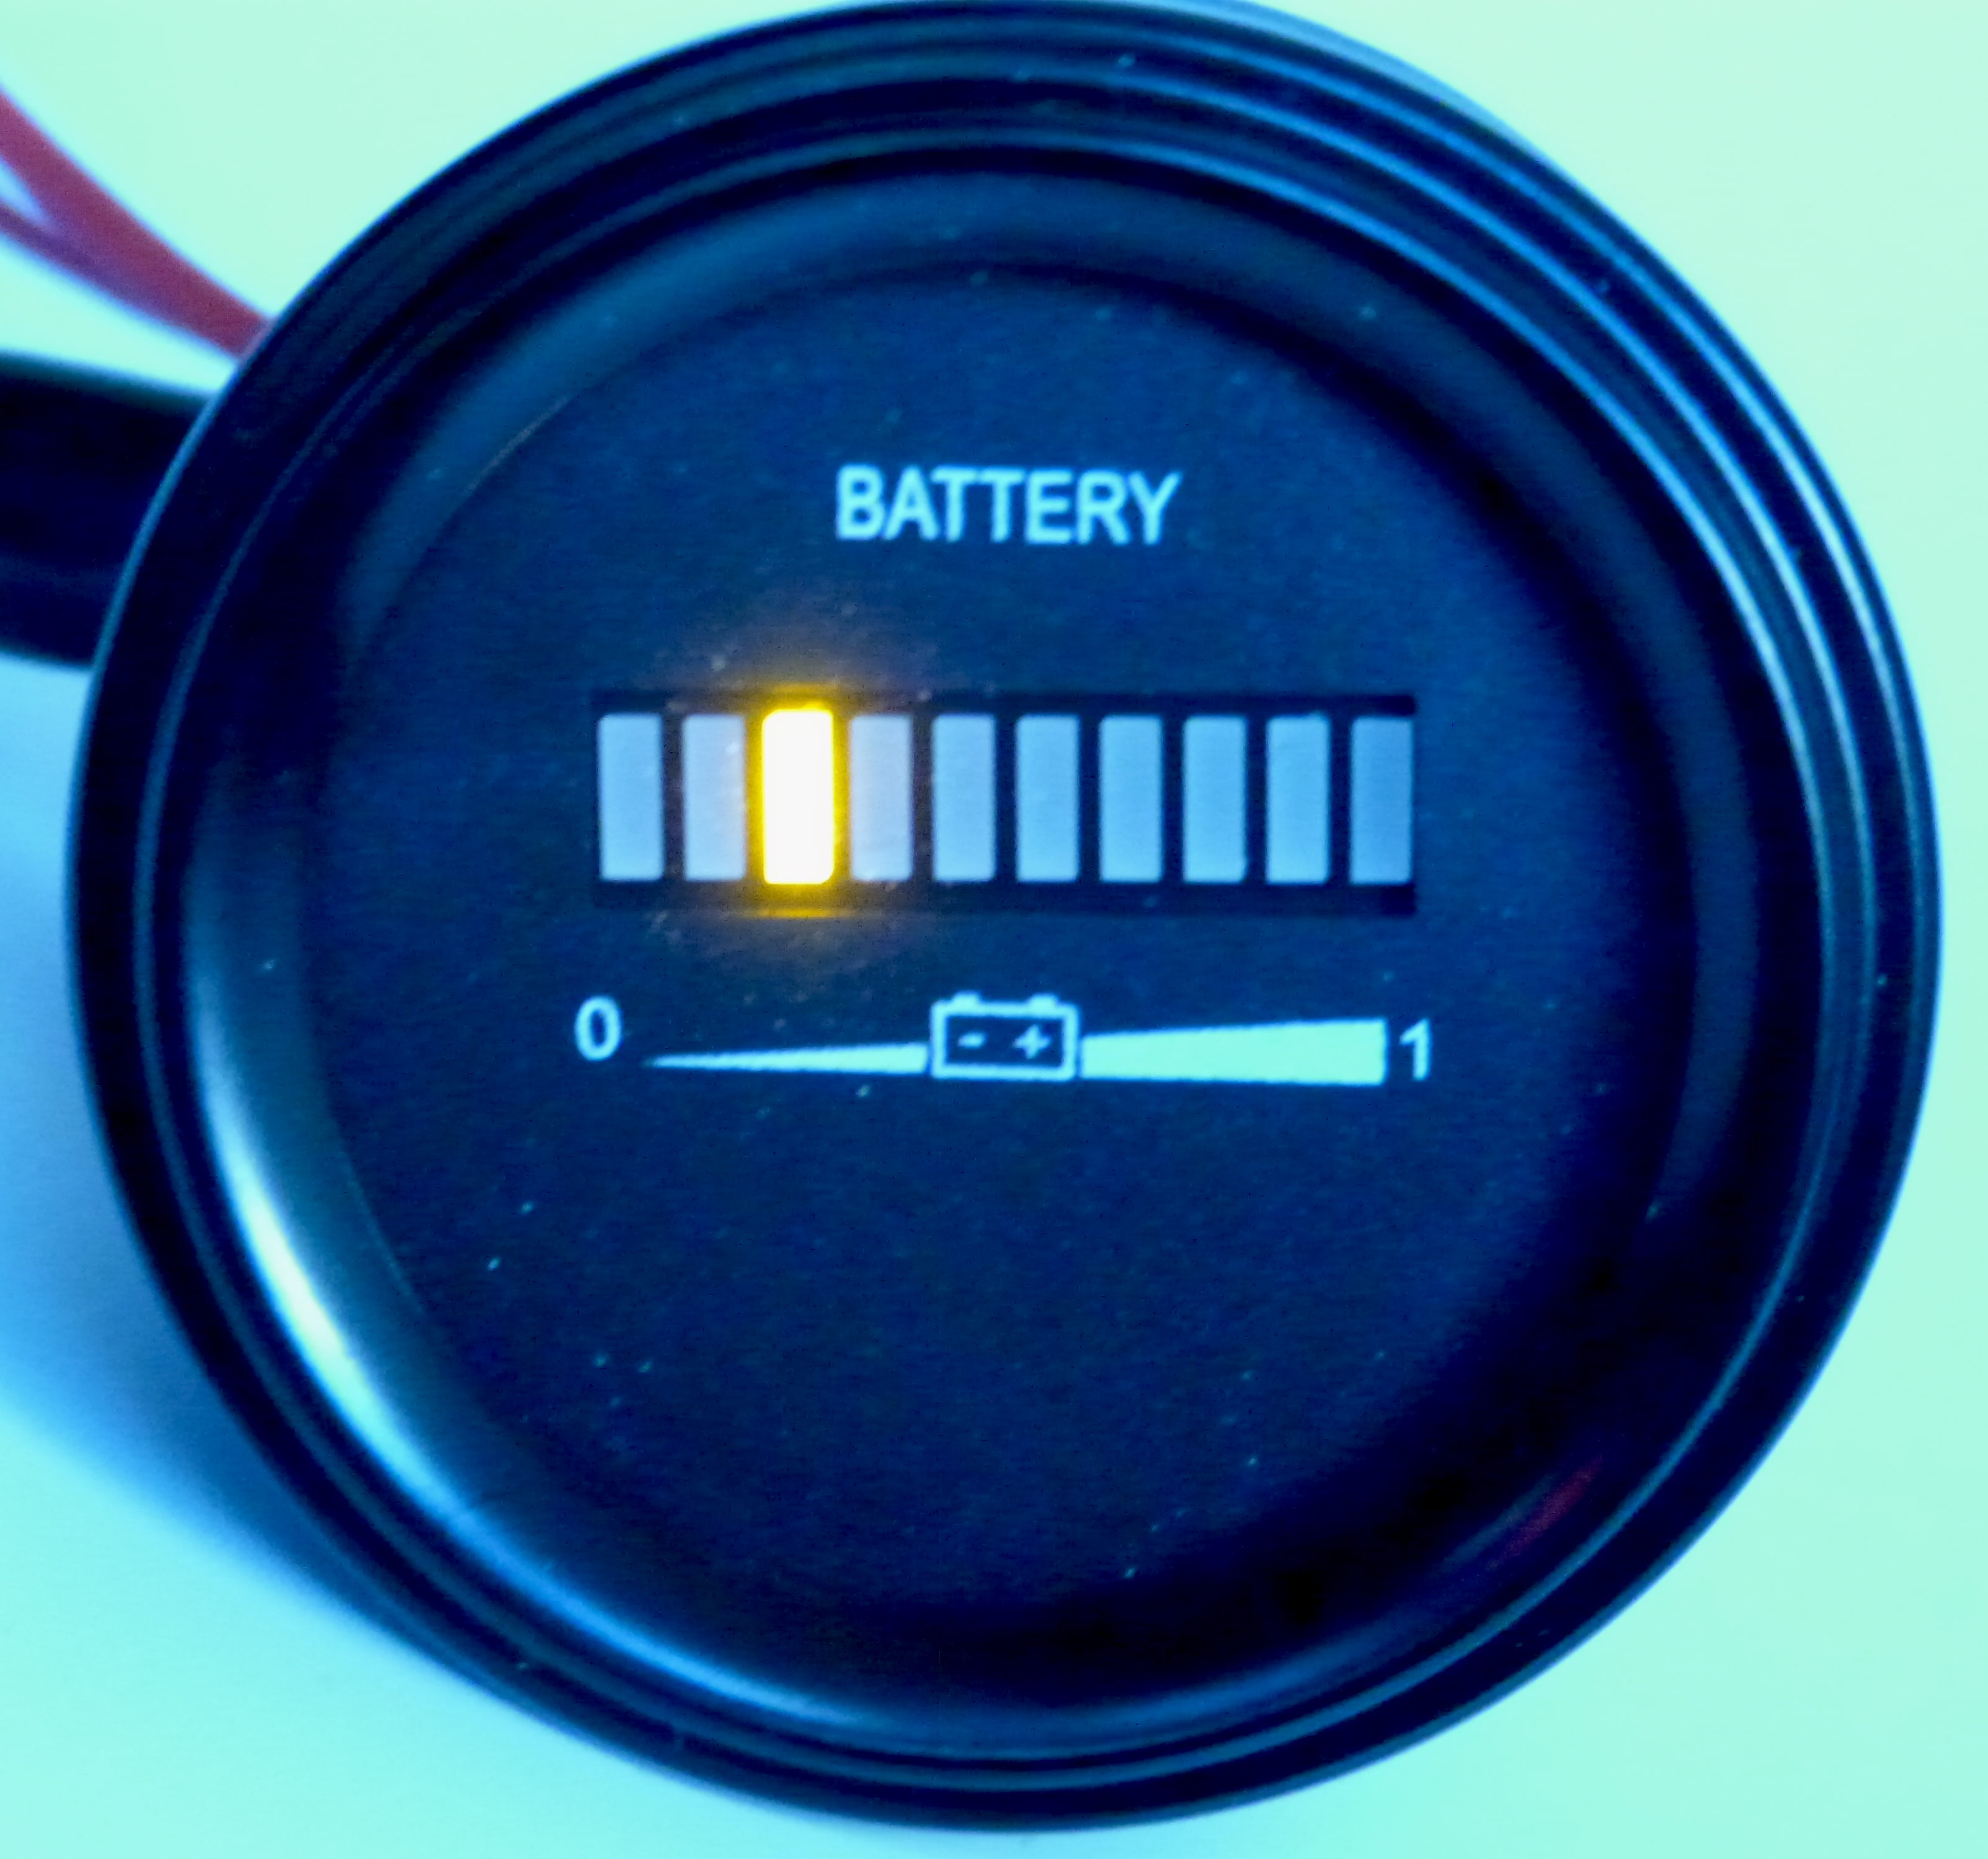 Battery Gauges Charge Indicators Flashing Led Status Indicator Low Warning